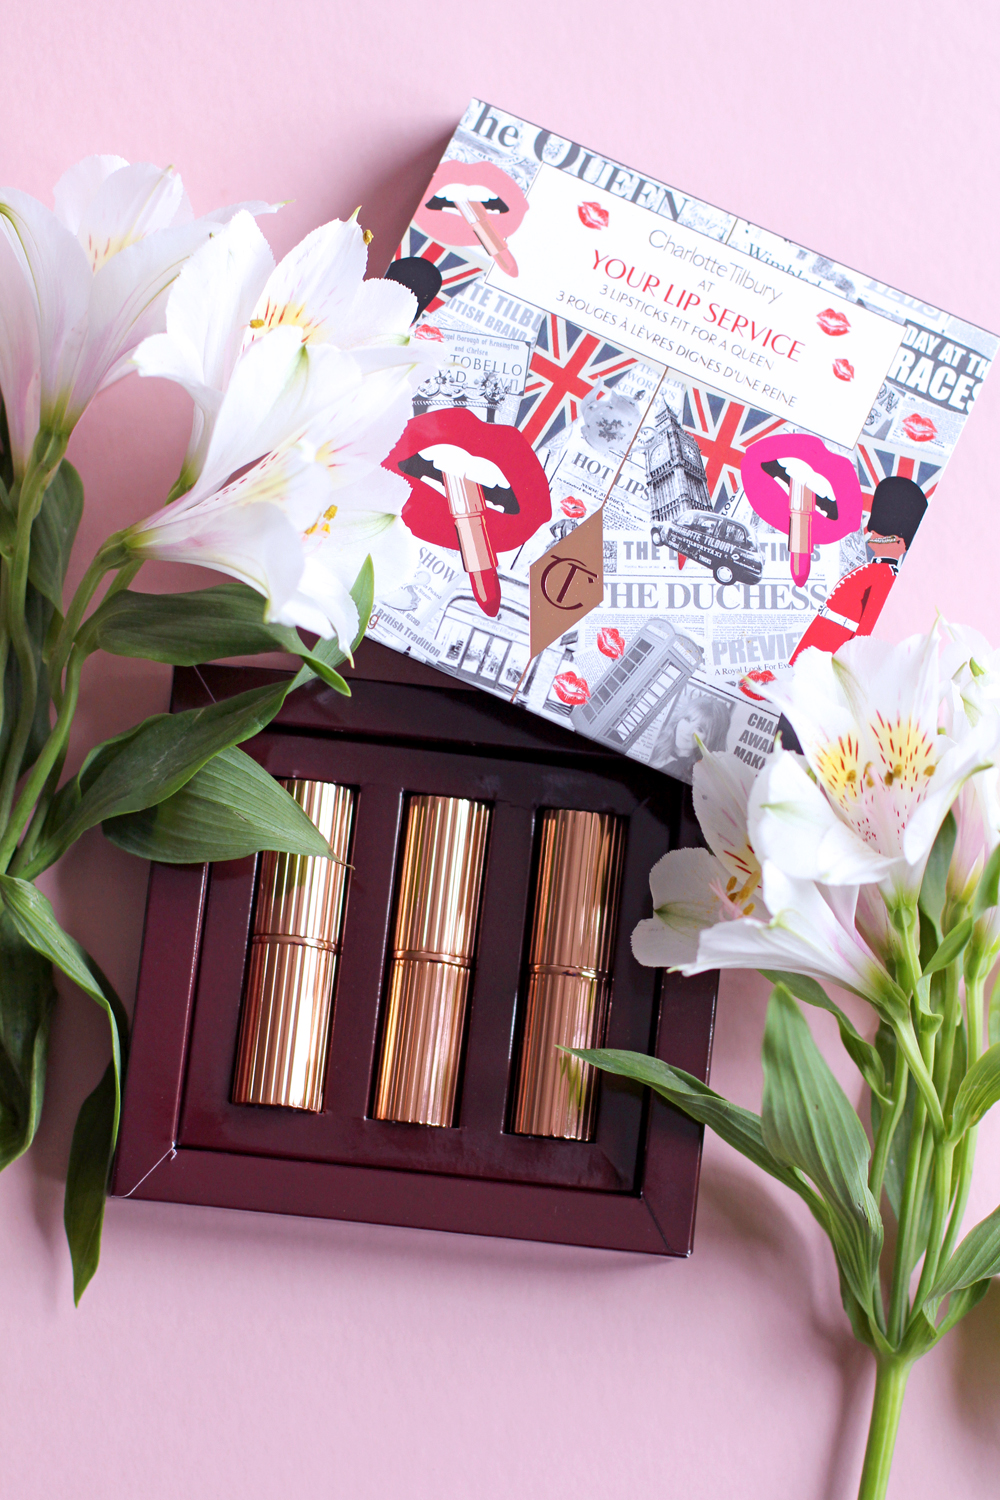 Charlotte Tilbury Your Lip Service royal lipsticks lip kit - UK beauty blog